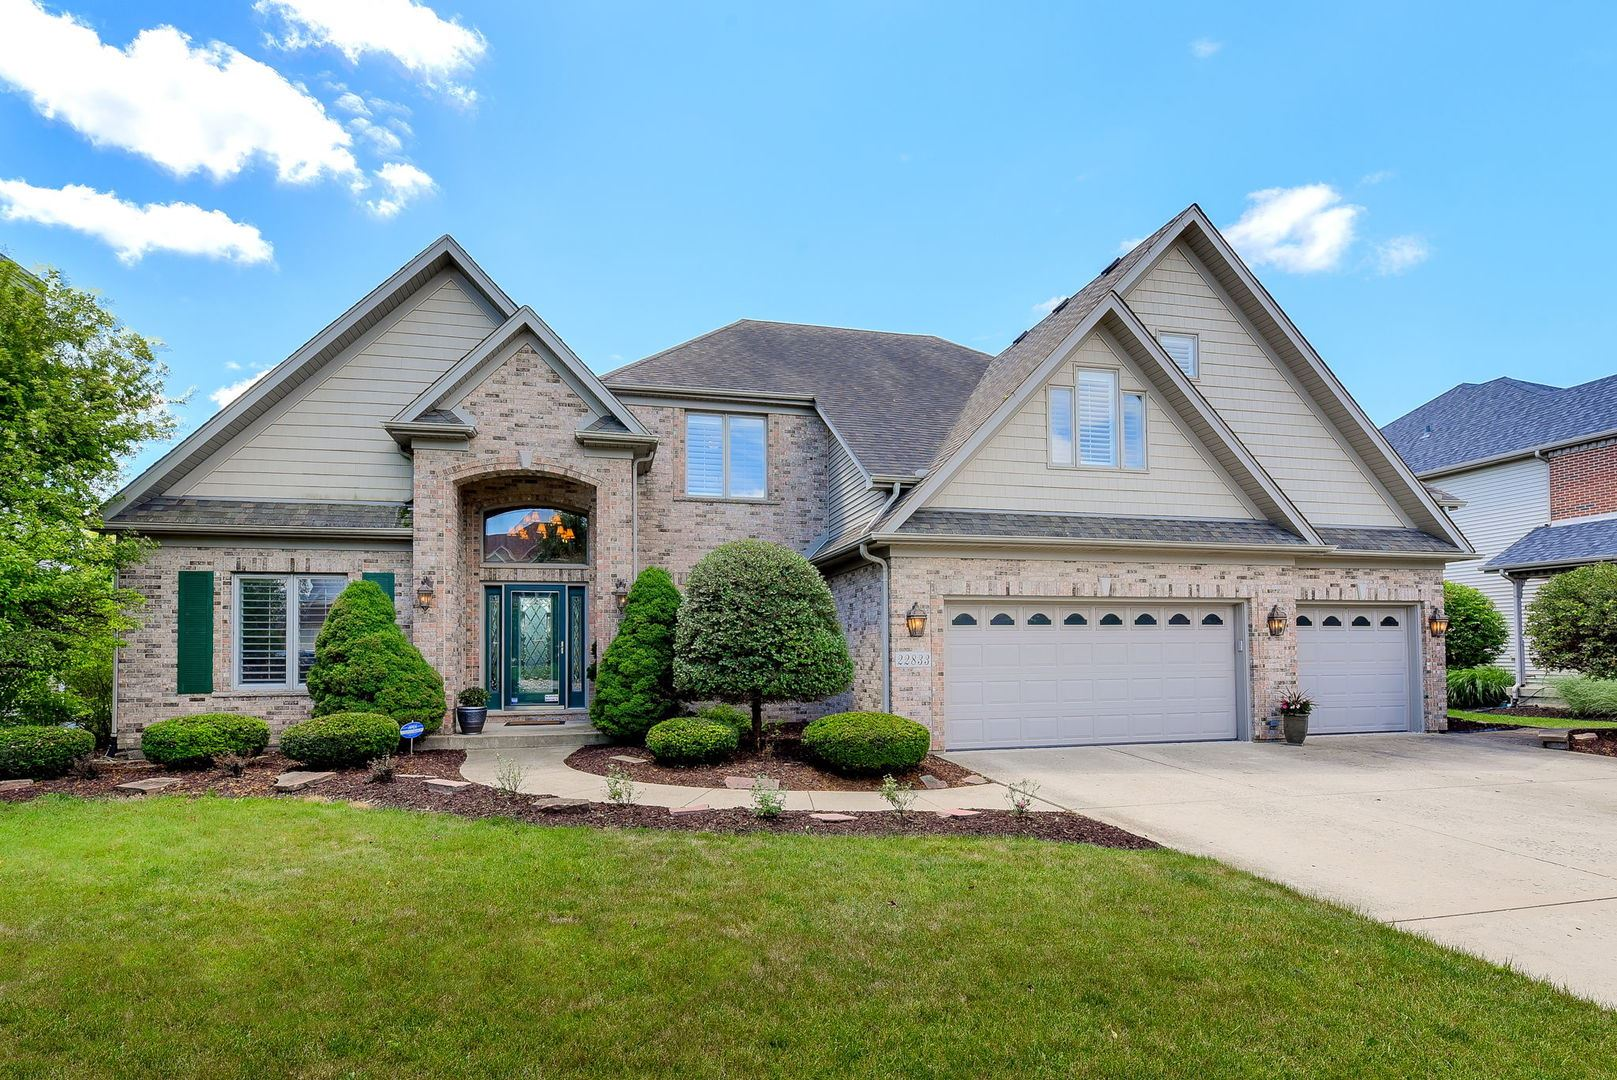 22833 Eider Court N, Plainfield, IL 60585 - MLS#: 10761330